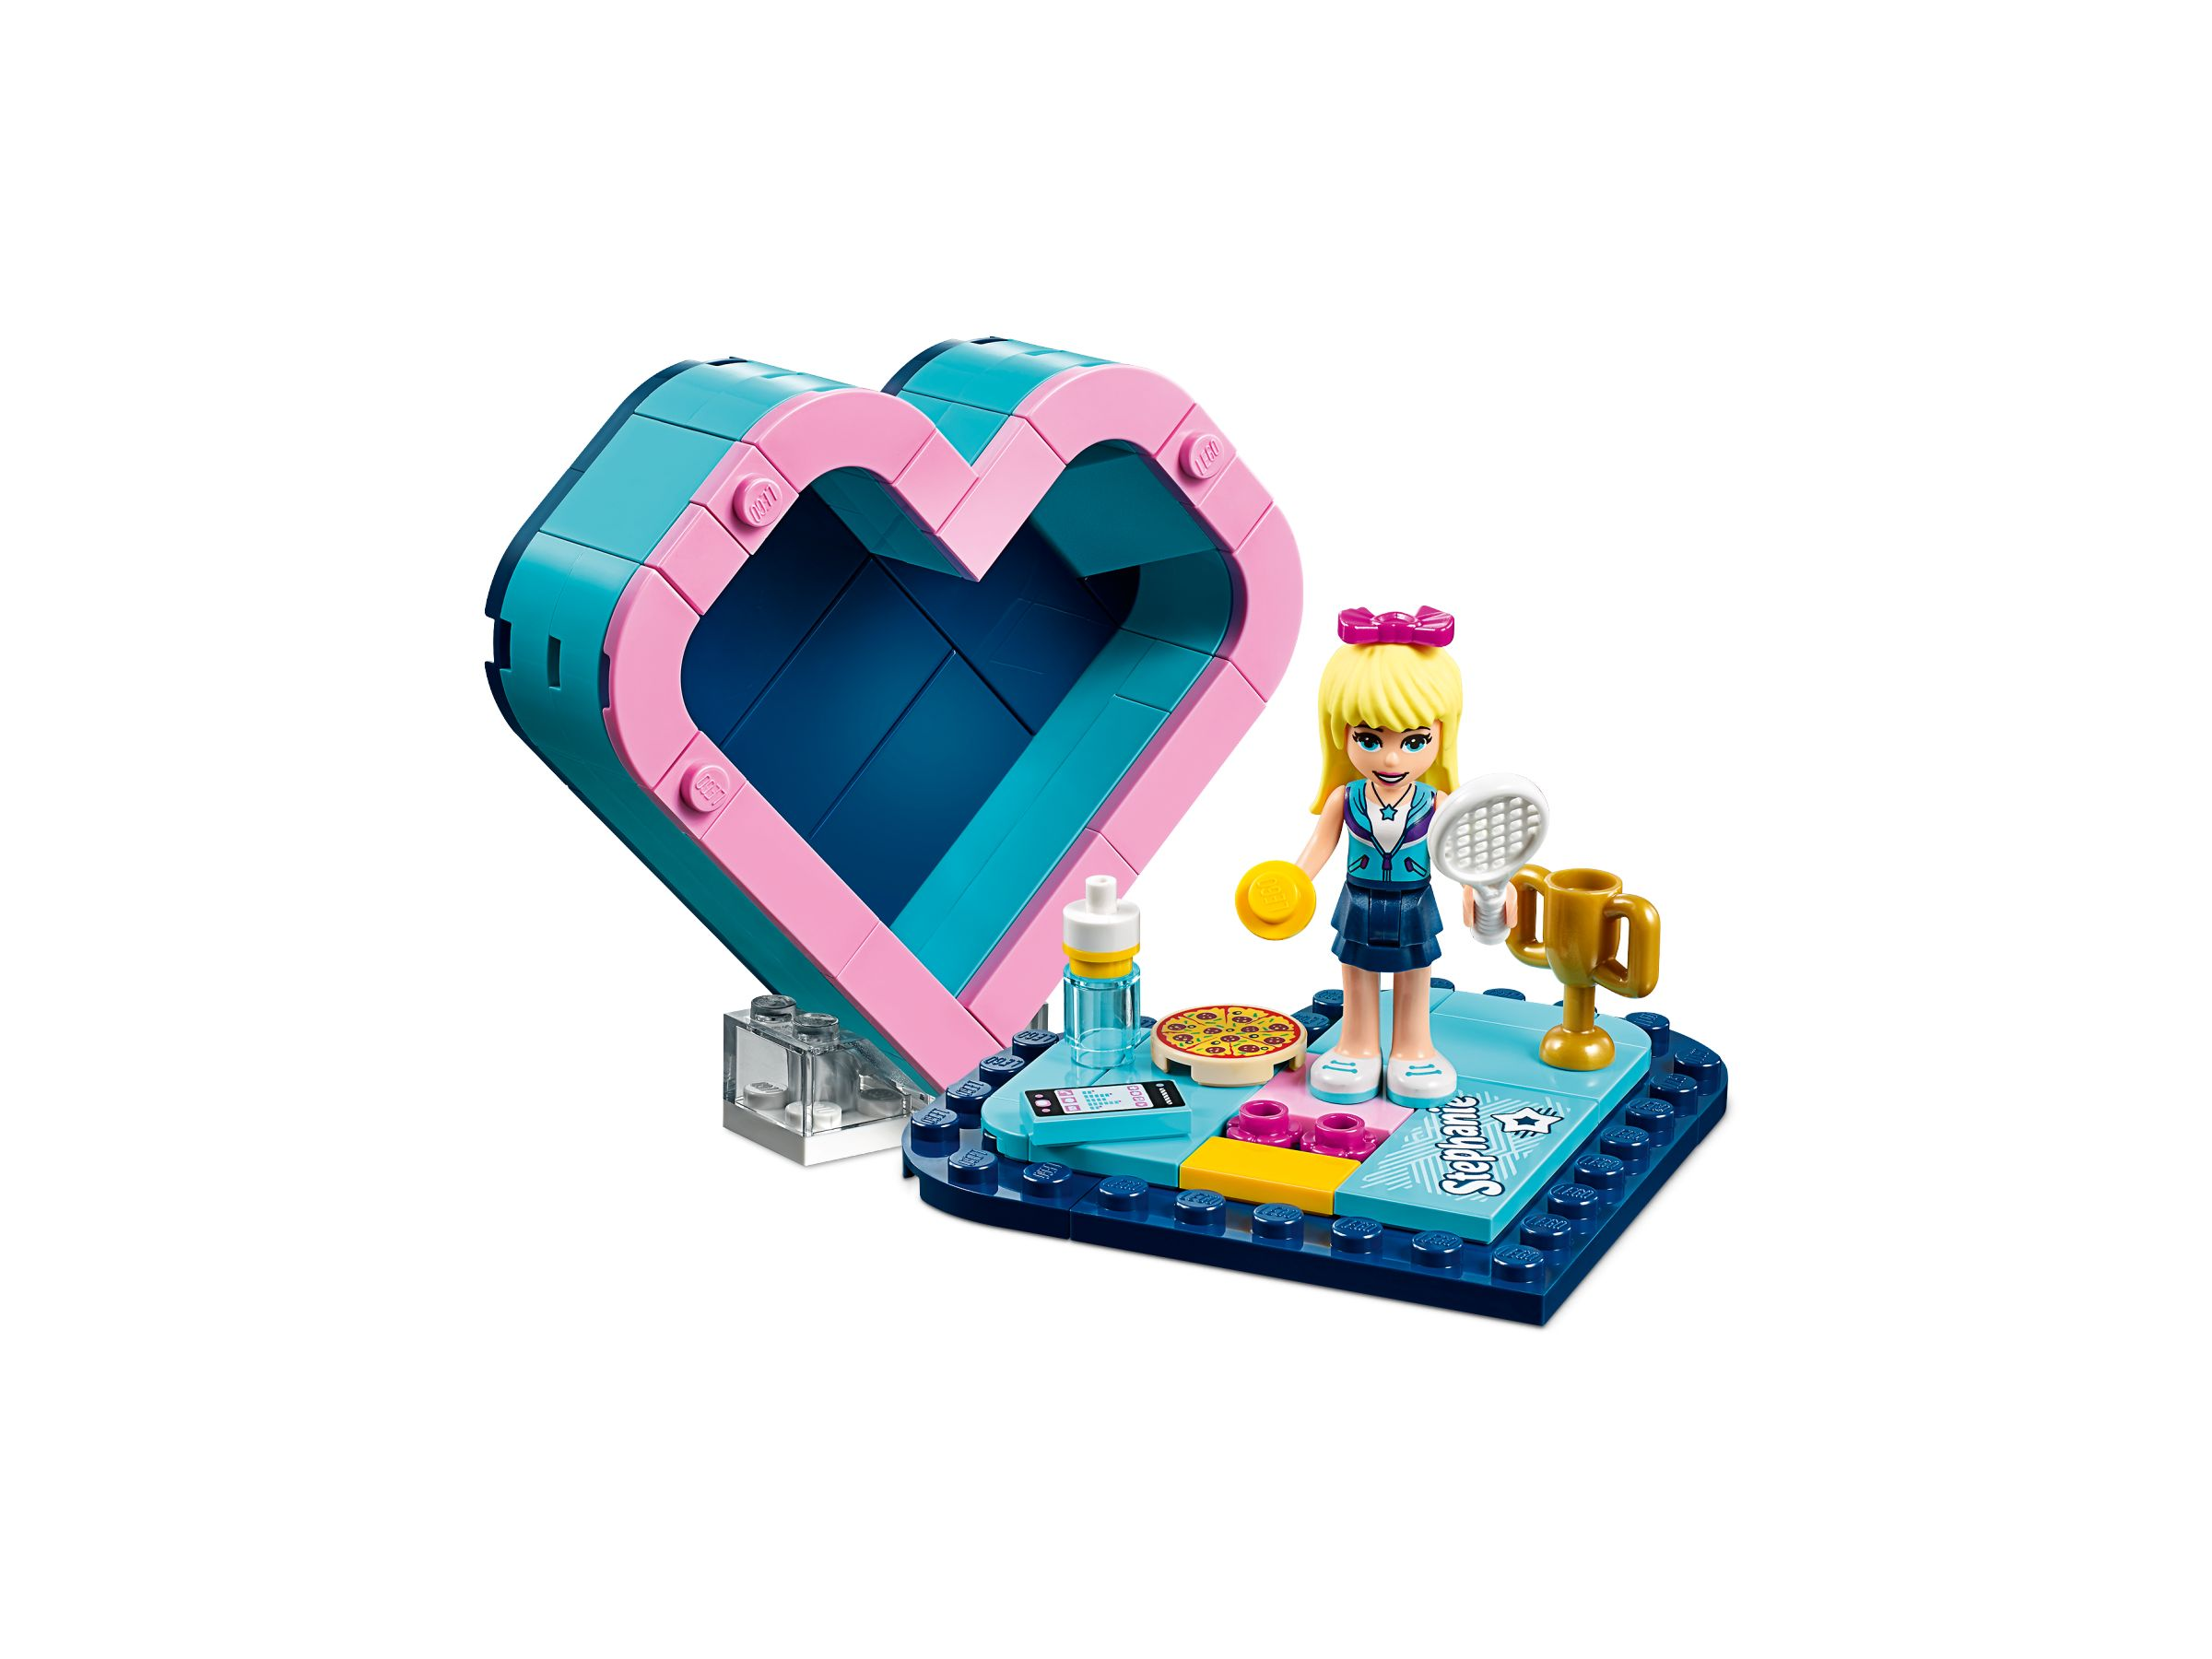 LEGO Friends 41356 Stephanies Herzbox LEGO_41356_alt2.jpg